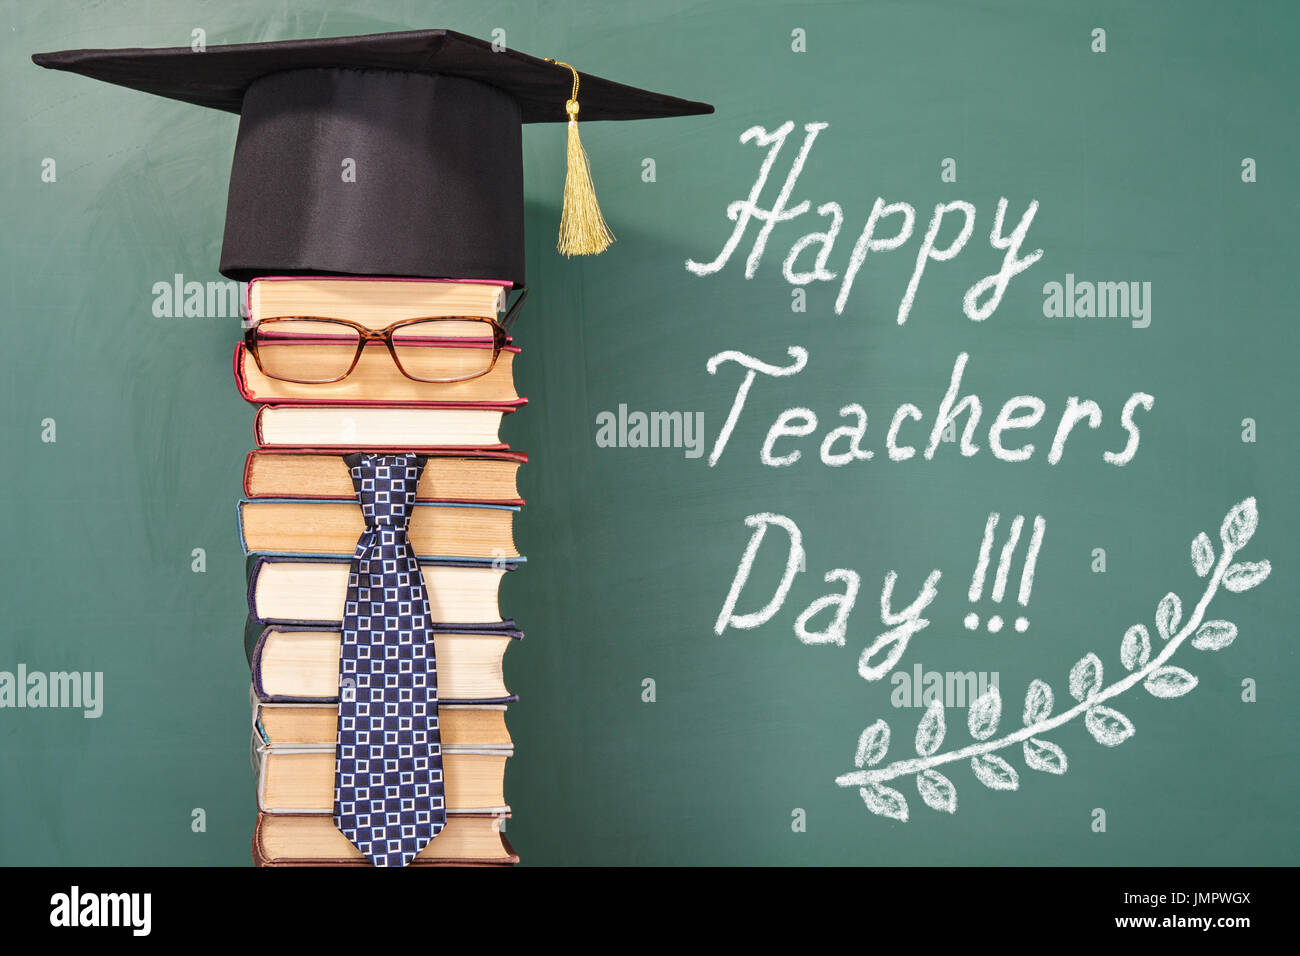 Happy teachers day funny concept - Stock Image